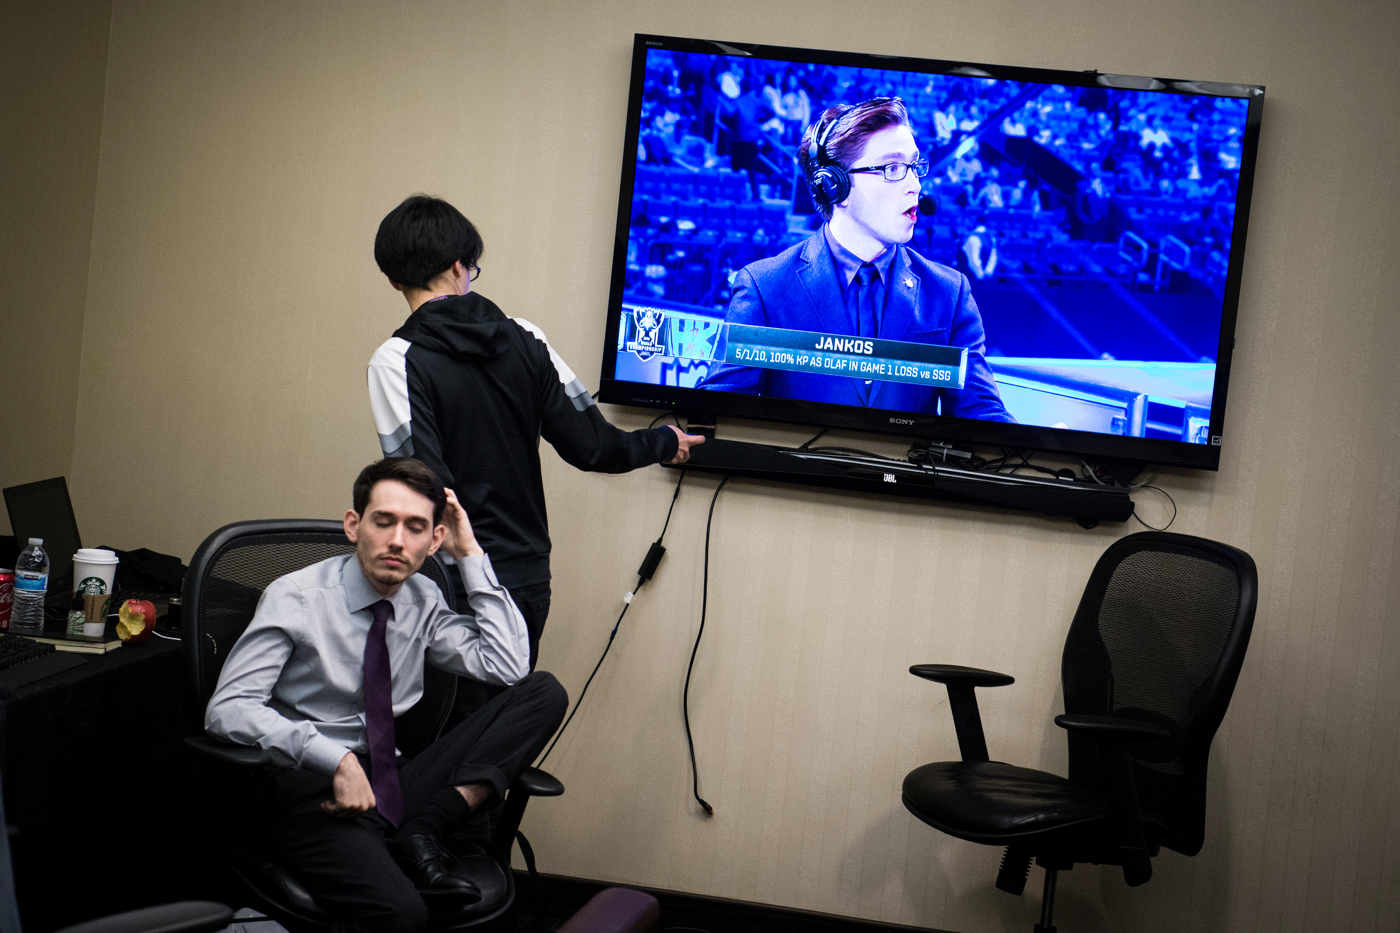 """H2k-Gaming team analyst Michael """"Veteran""""Archer tries to turn off the television recapping the team's loss as head coach Neil """"PR0LLY""""Hammad tries to gather his thoughts."""